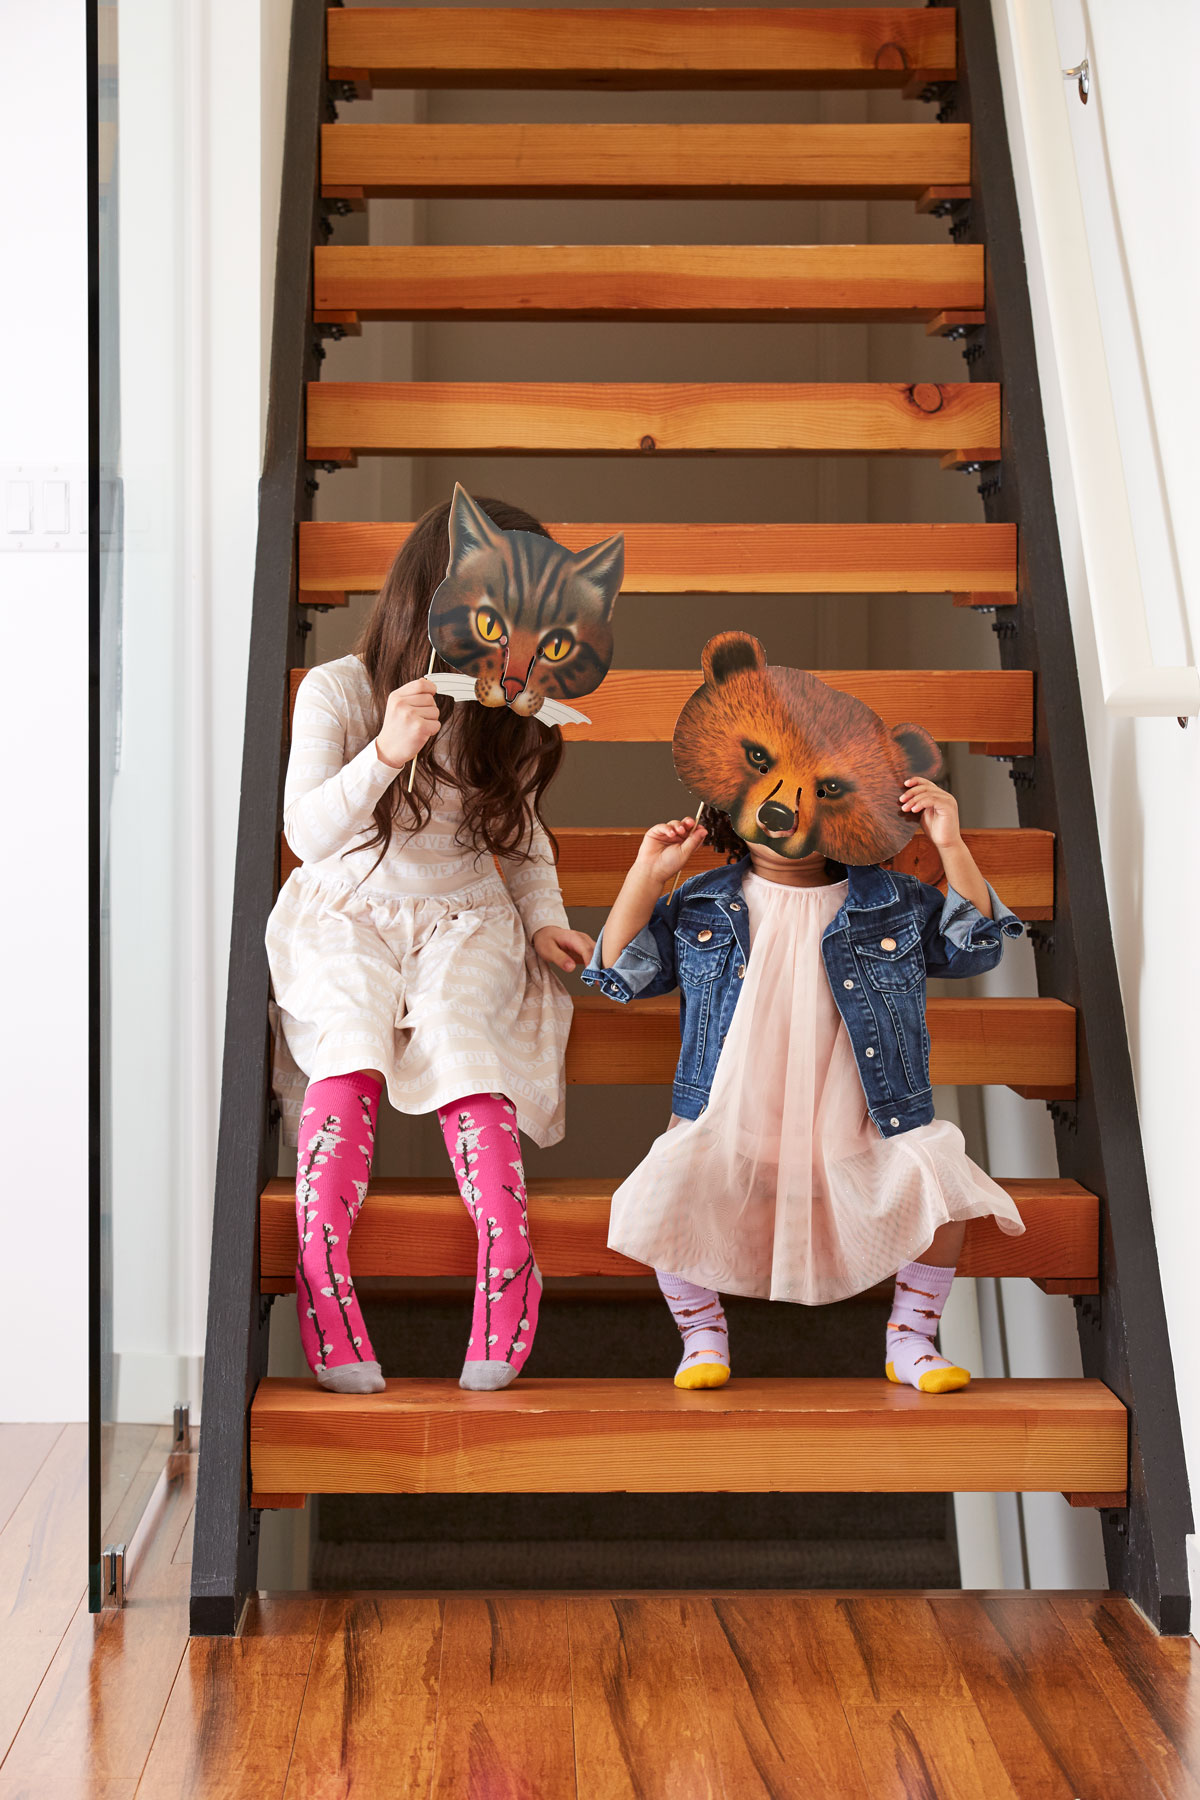 Kitty Willow Knee High for Youth YK0048, Kitty Willow Knee High for Juniors JK0048, Hot Dogs Knee High for Toddlers TK0020